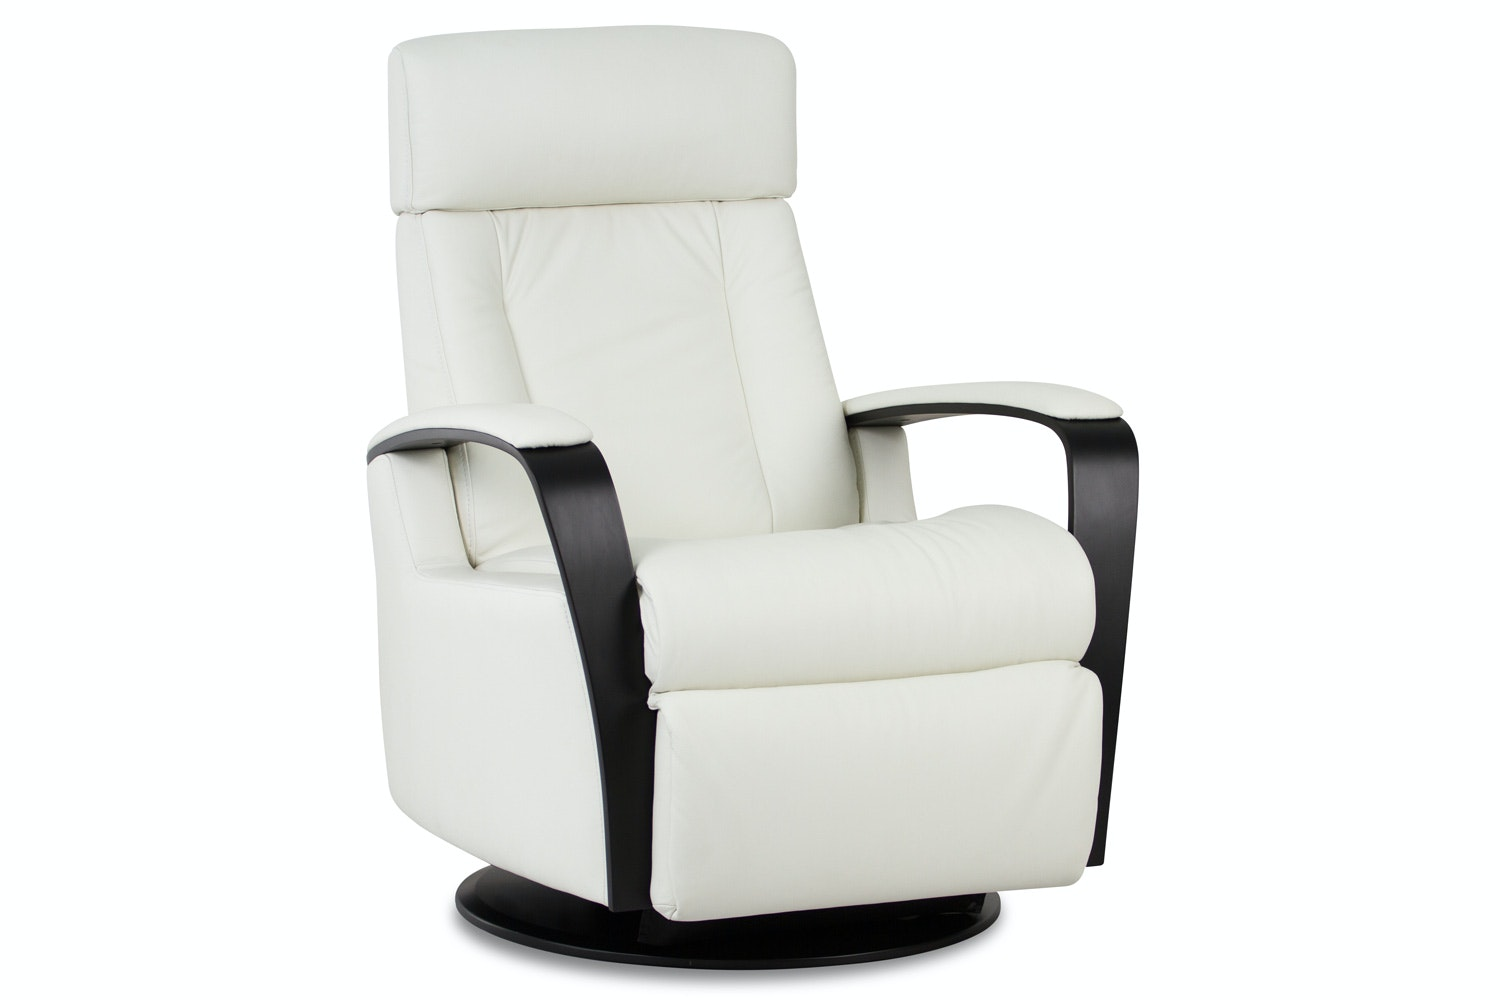 Lotus Recliner Chair - Leather and Wood - Standard - Trend - IMG